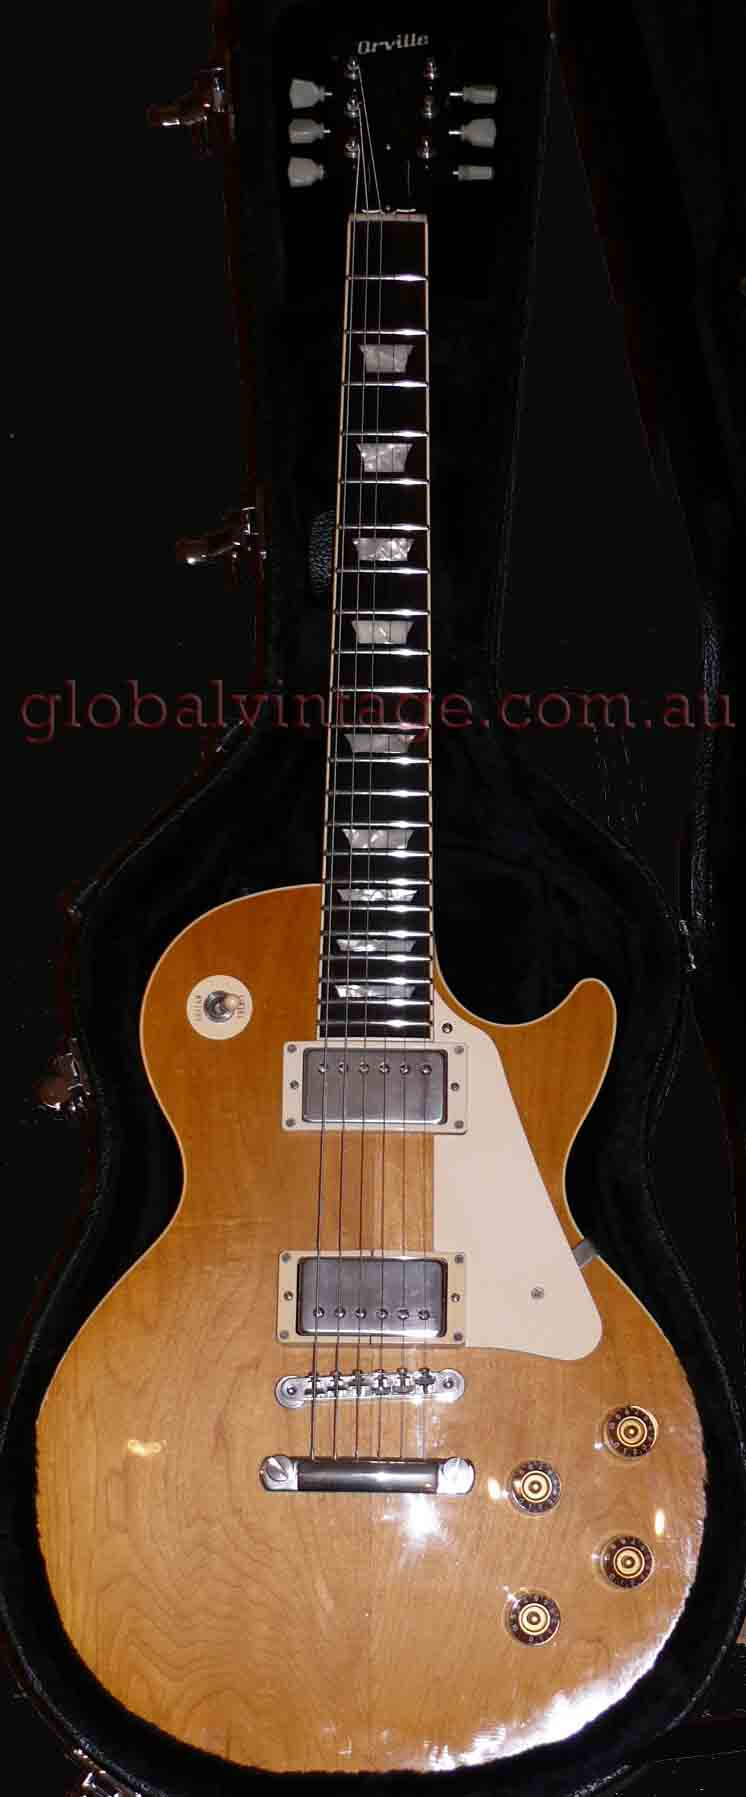 ~SOLD~Orville Japan `95 Les Paul Standard- Plain Top